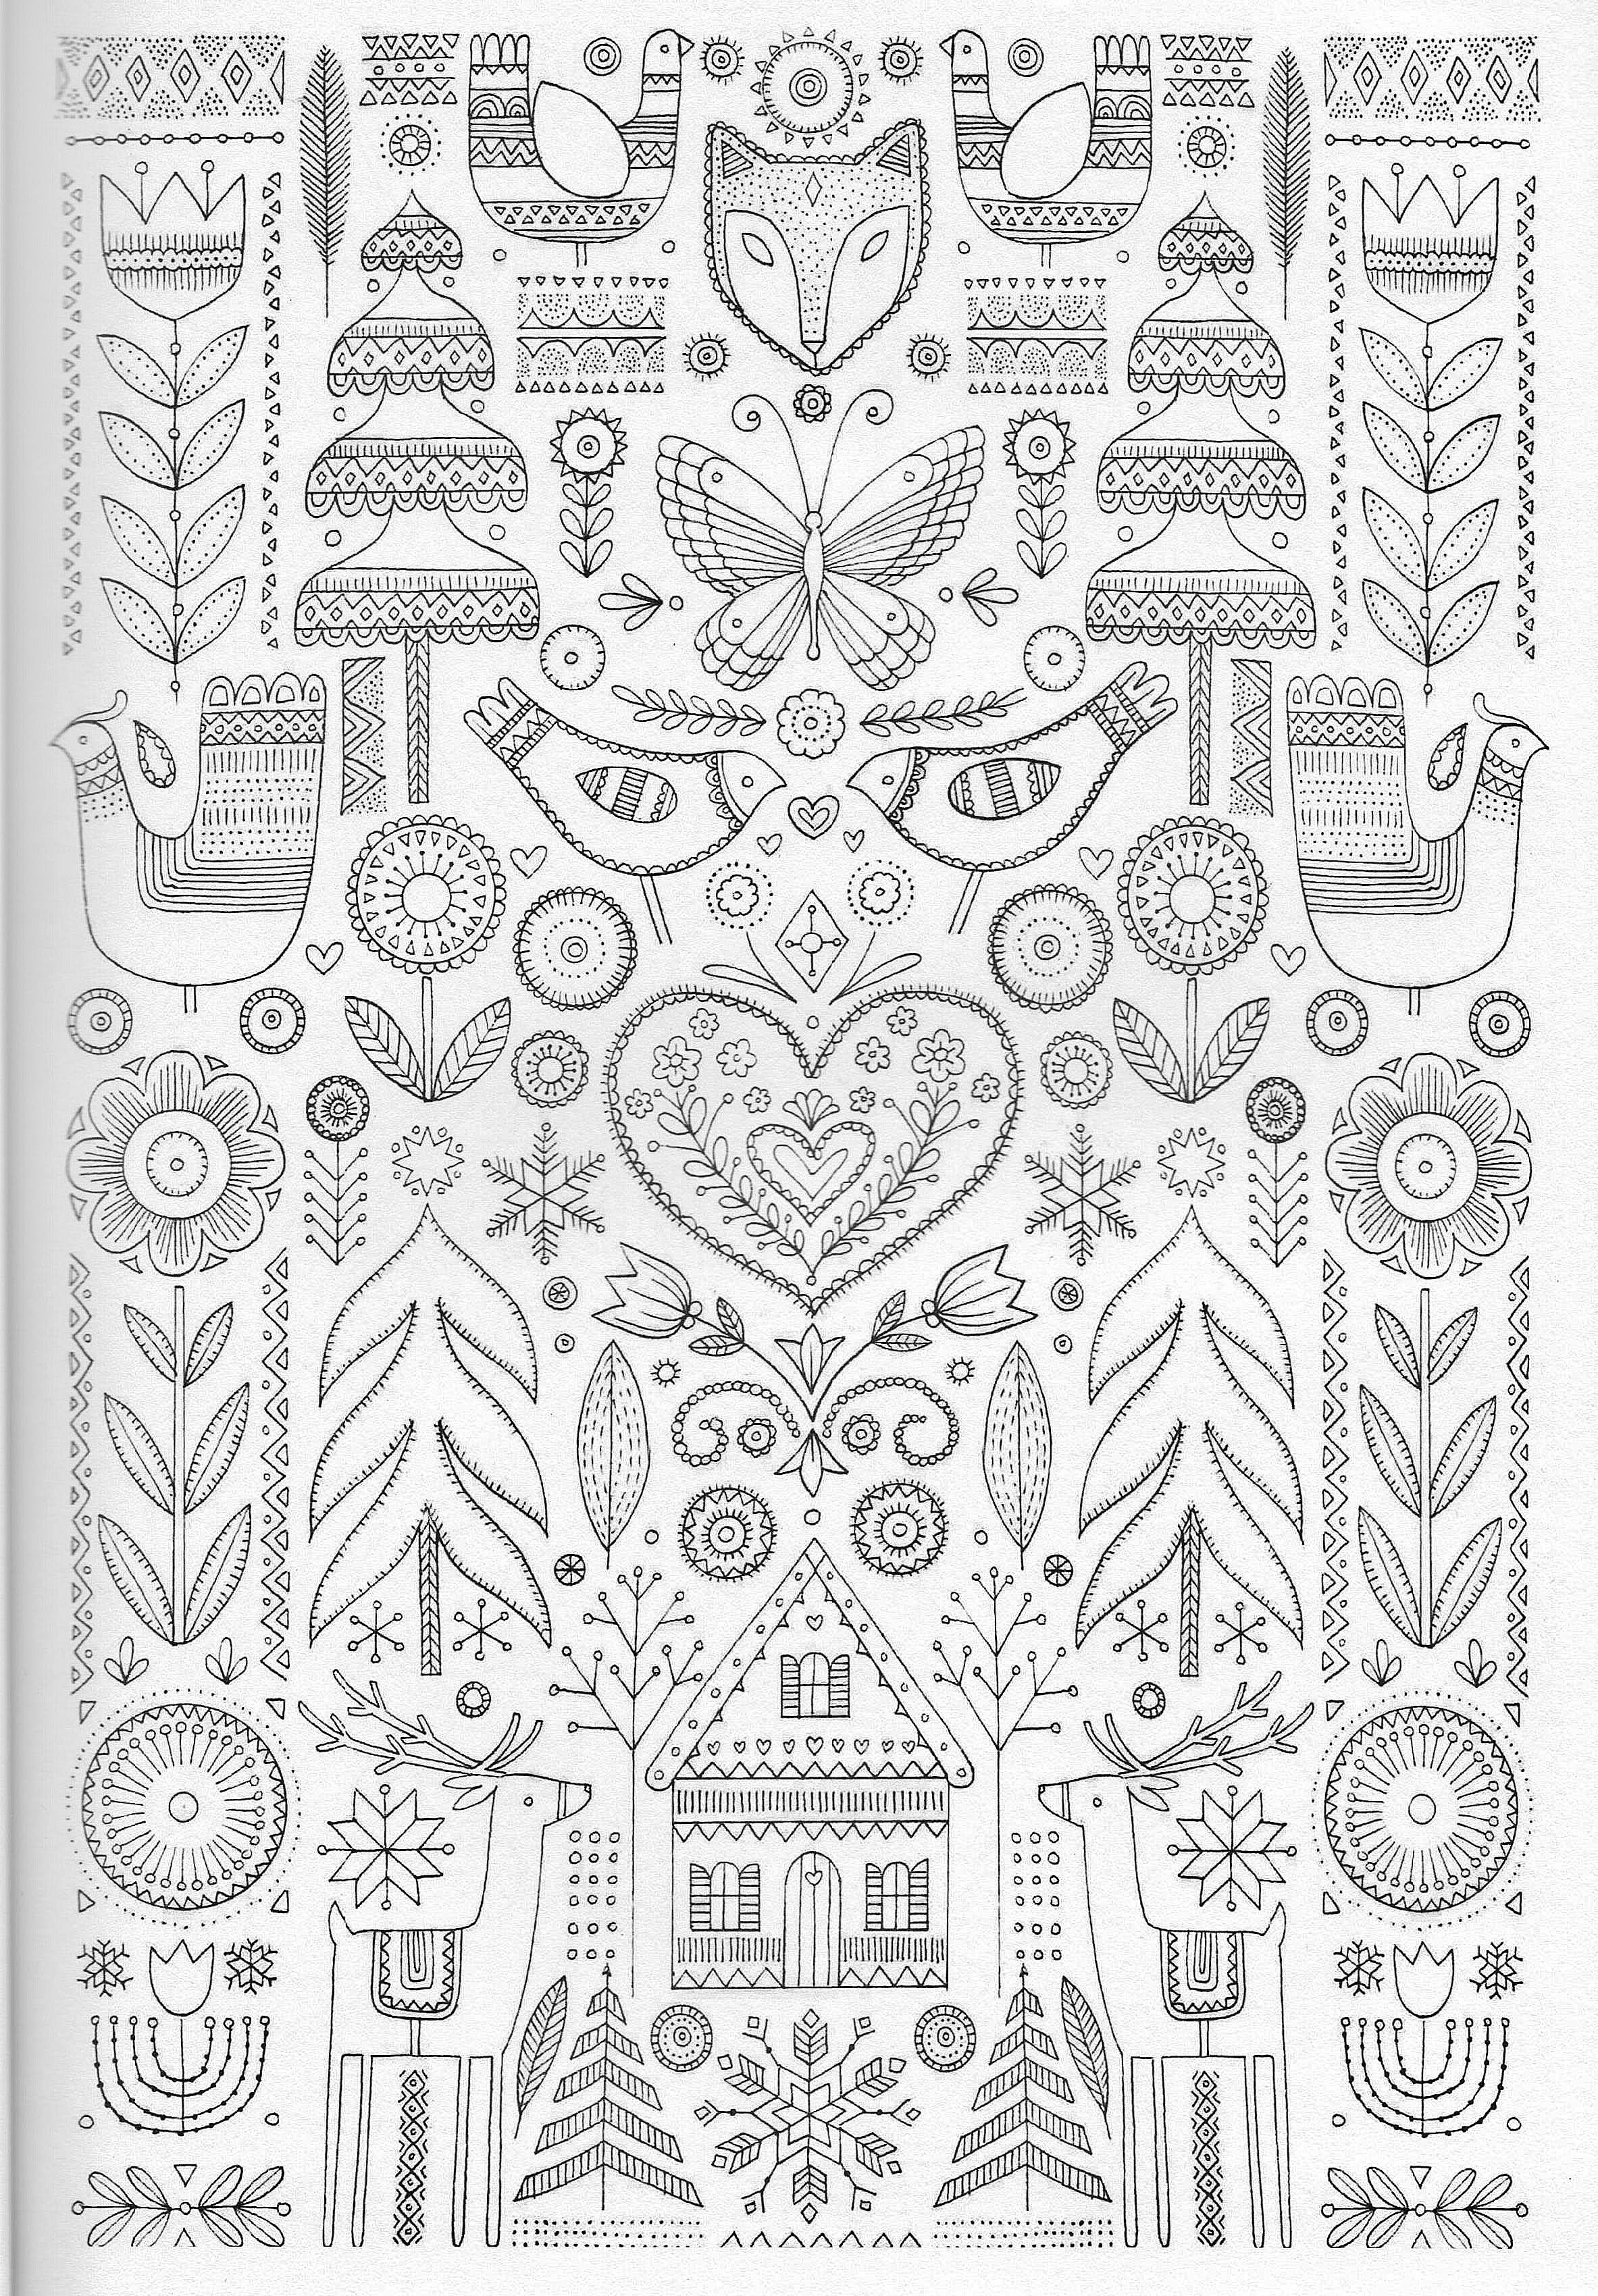 Adult coloring page | Join my grown-up coloring group on fb: "|2366|3400|?|24f443a55e74f309ecce7d0f1d080d30|False|UNLIKELY|0.31778016686439514